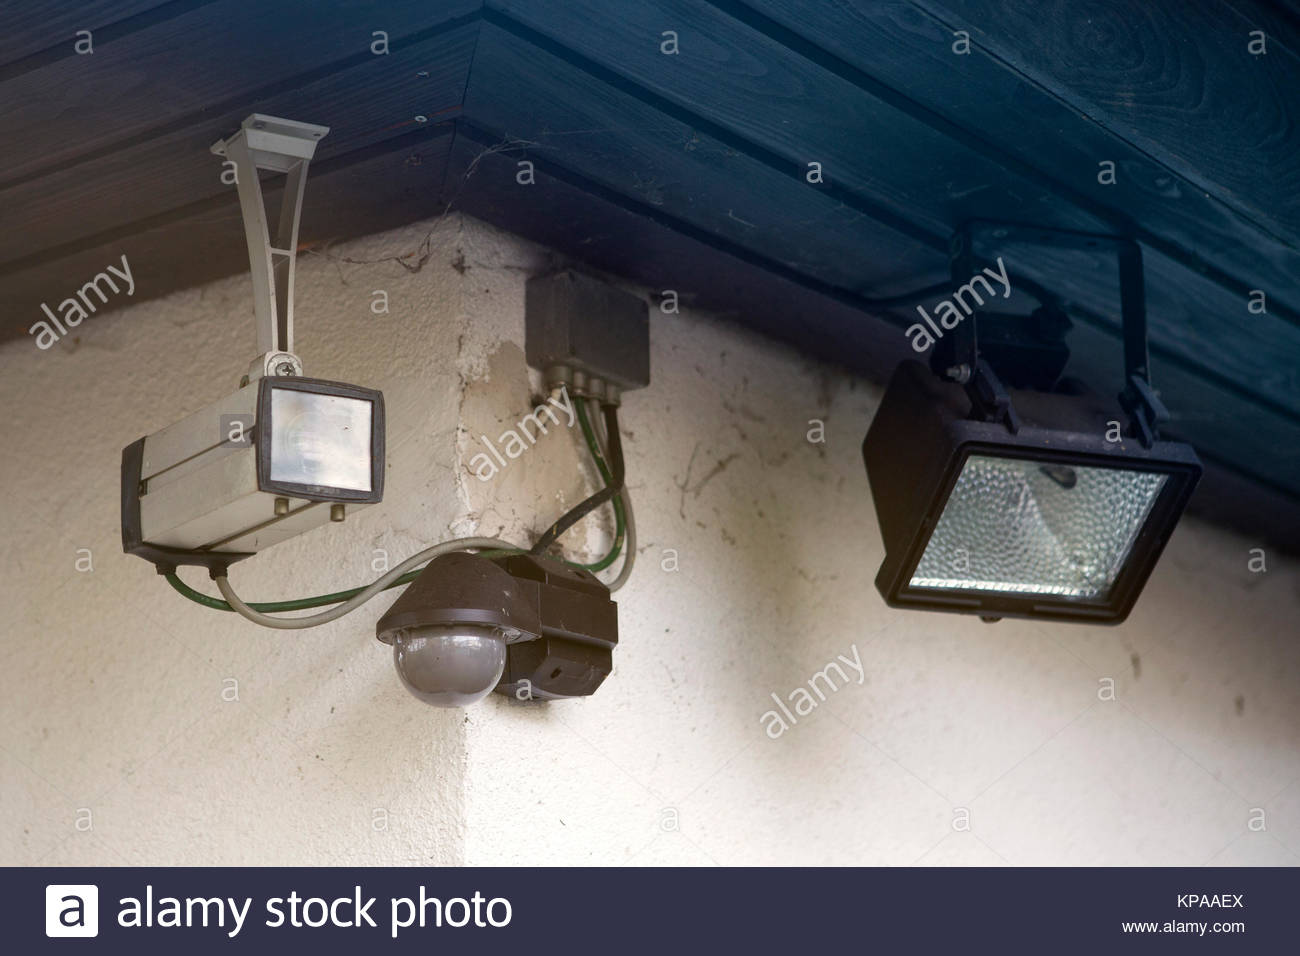 security system and camera outside at a house - Stock Image